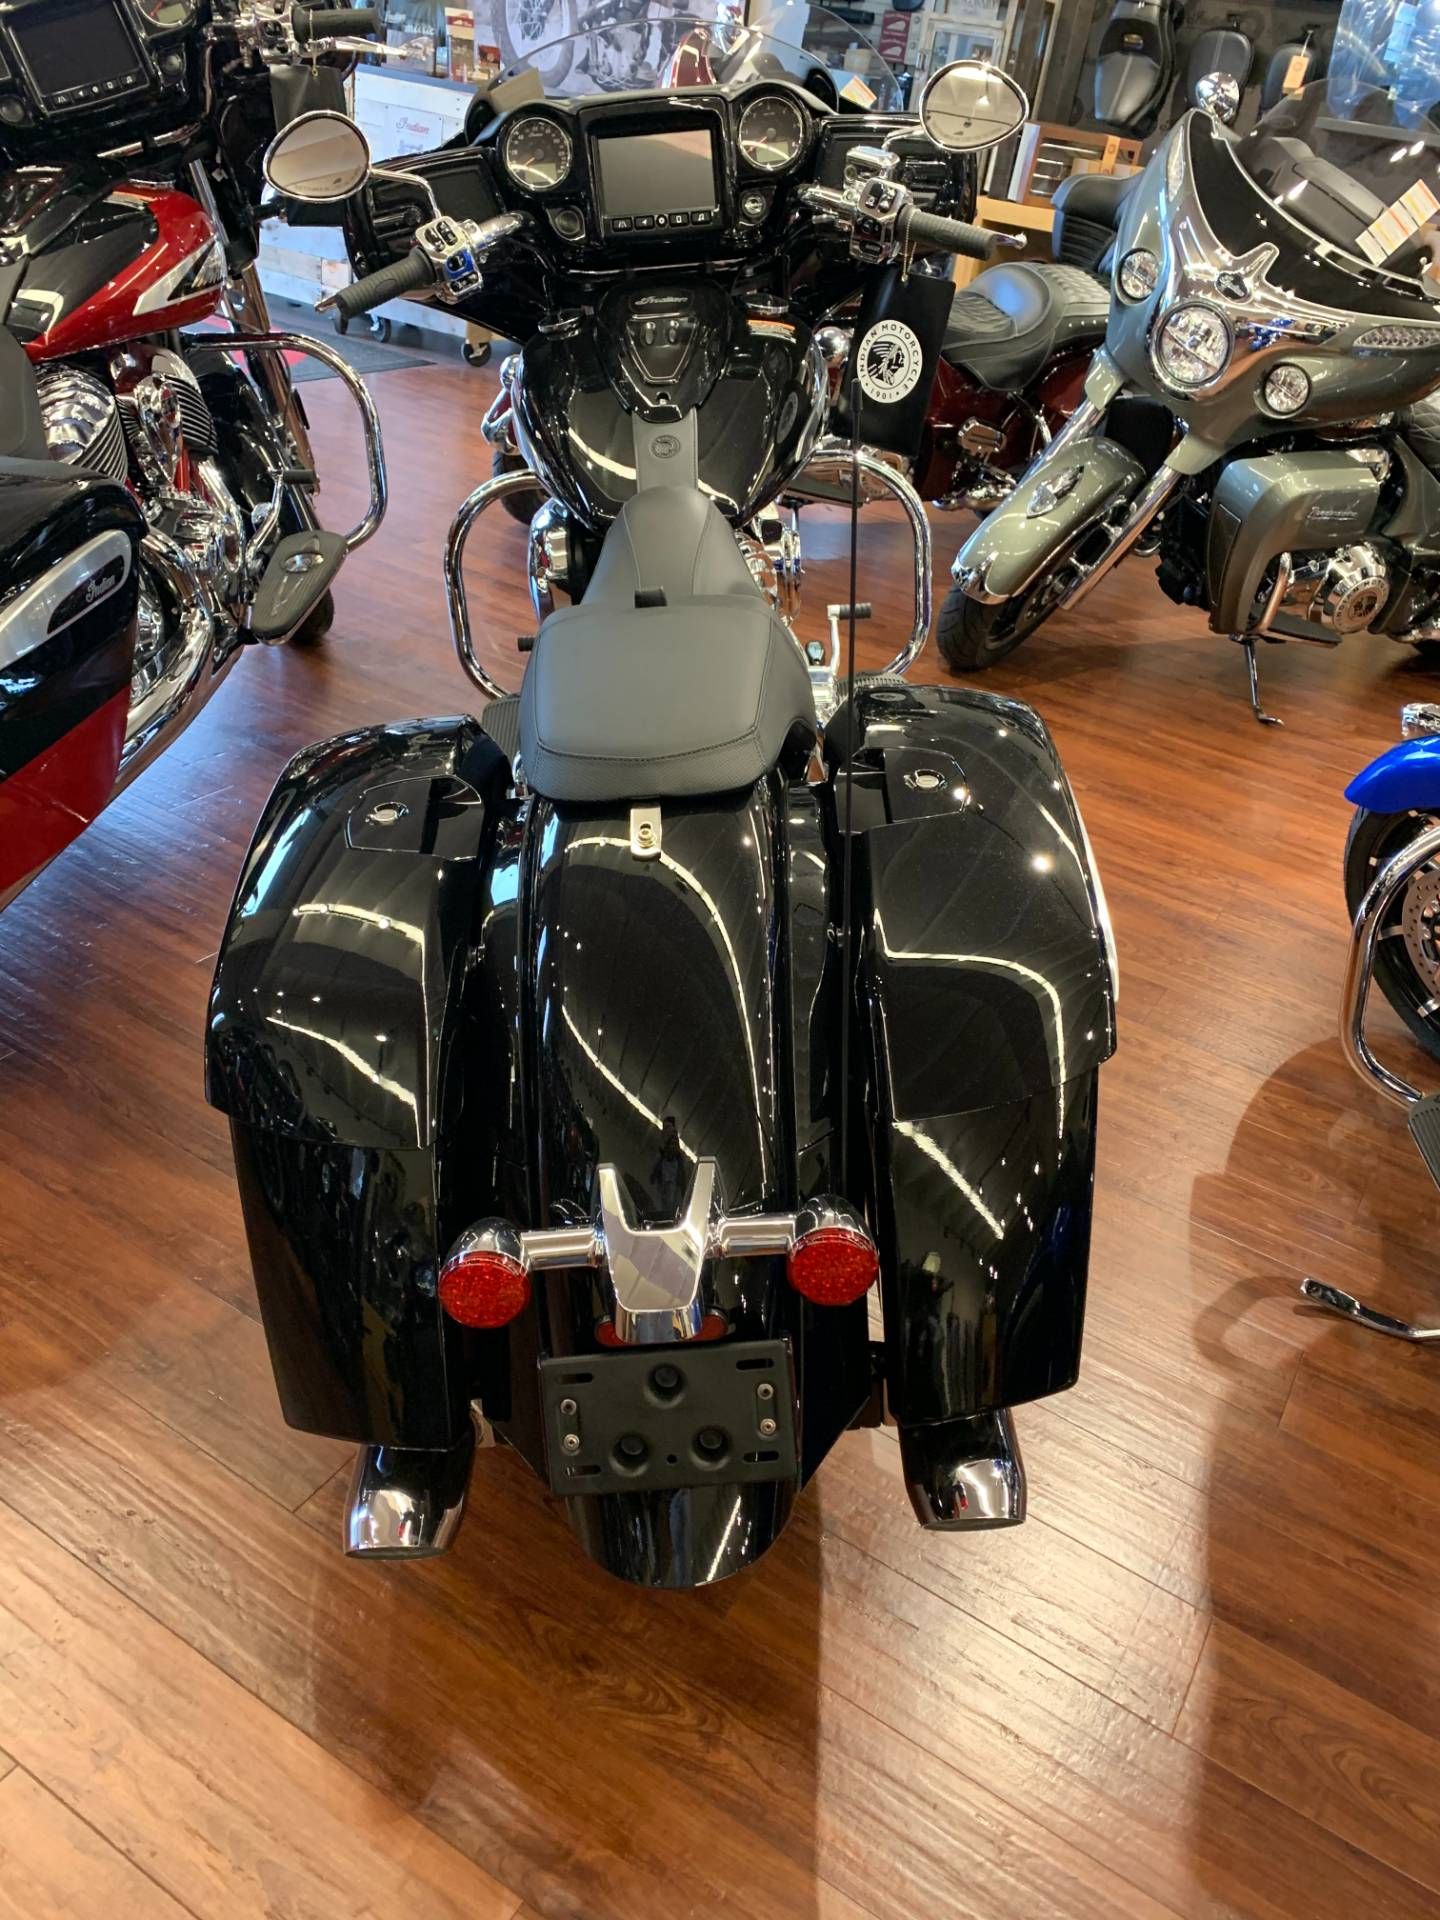 2021 Indian Chieftain® Limited in Nashville, Tennessee - Photo 4